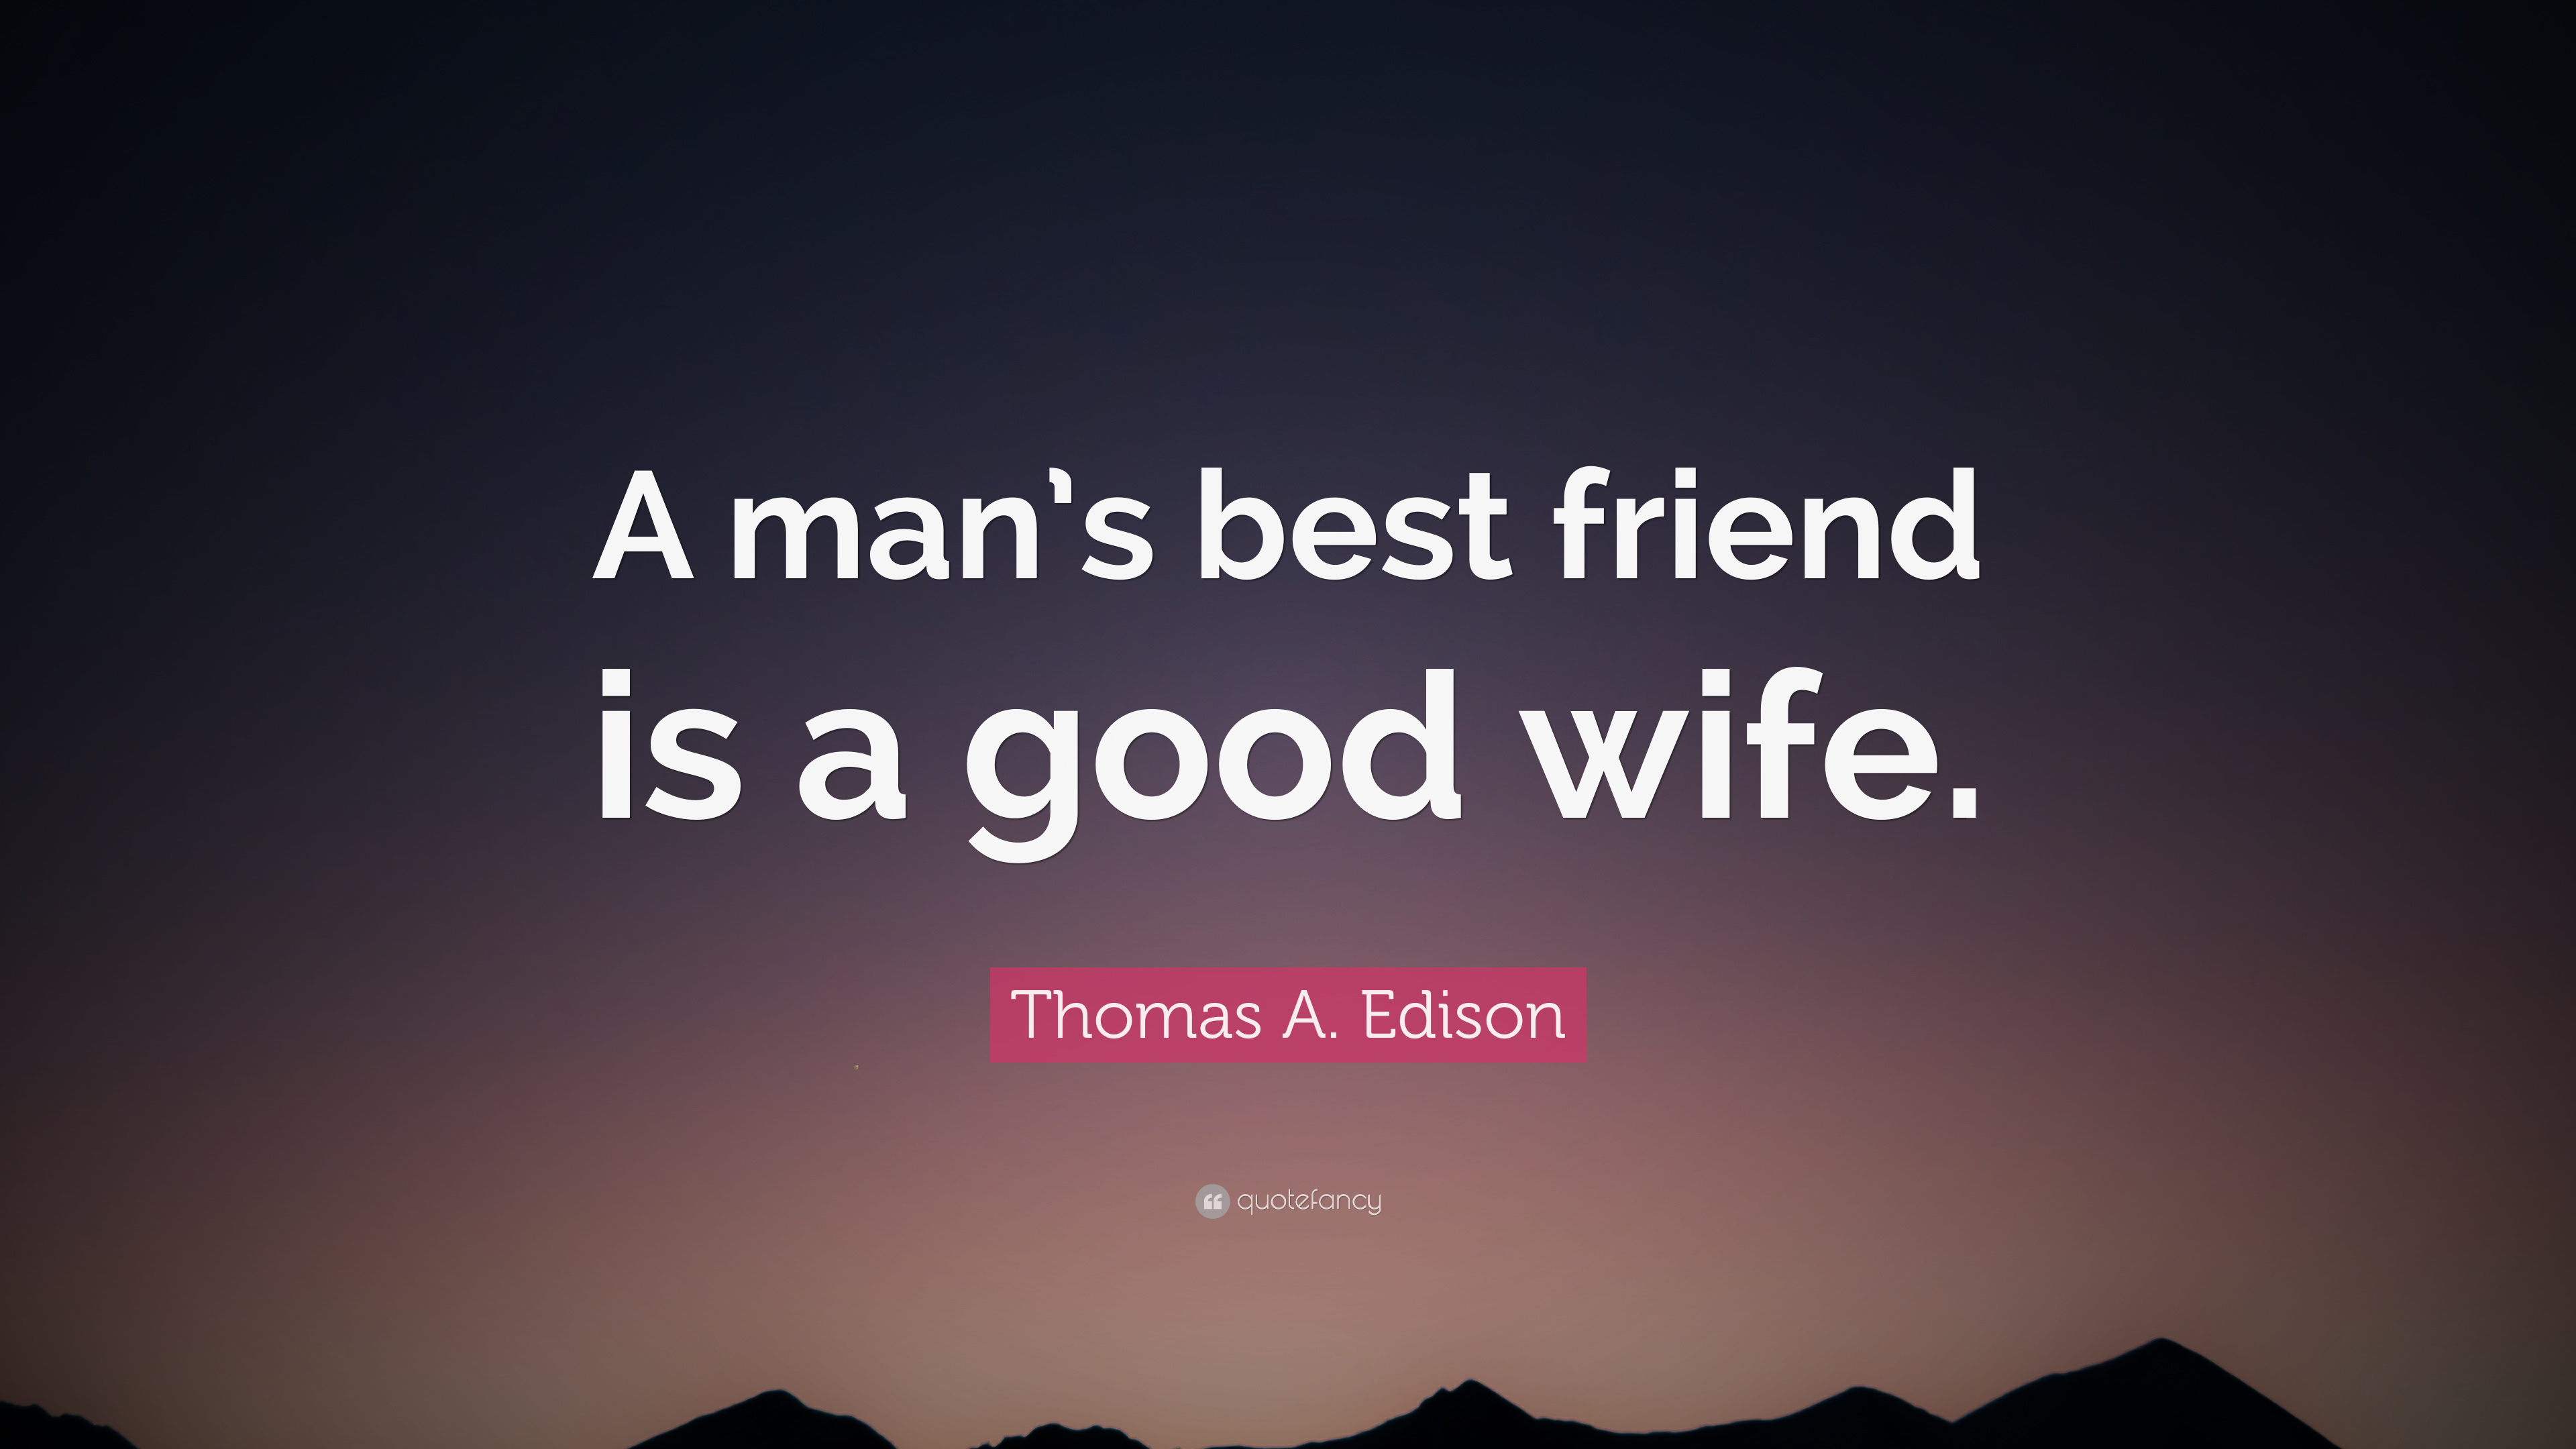 thomas a edison quote a man s best friend is a good wife 12